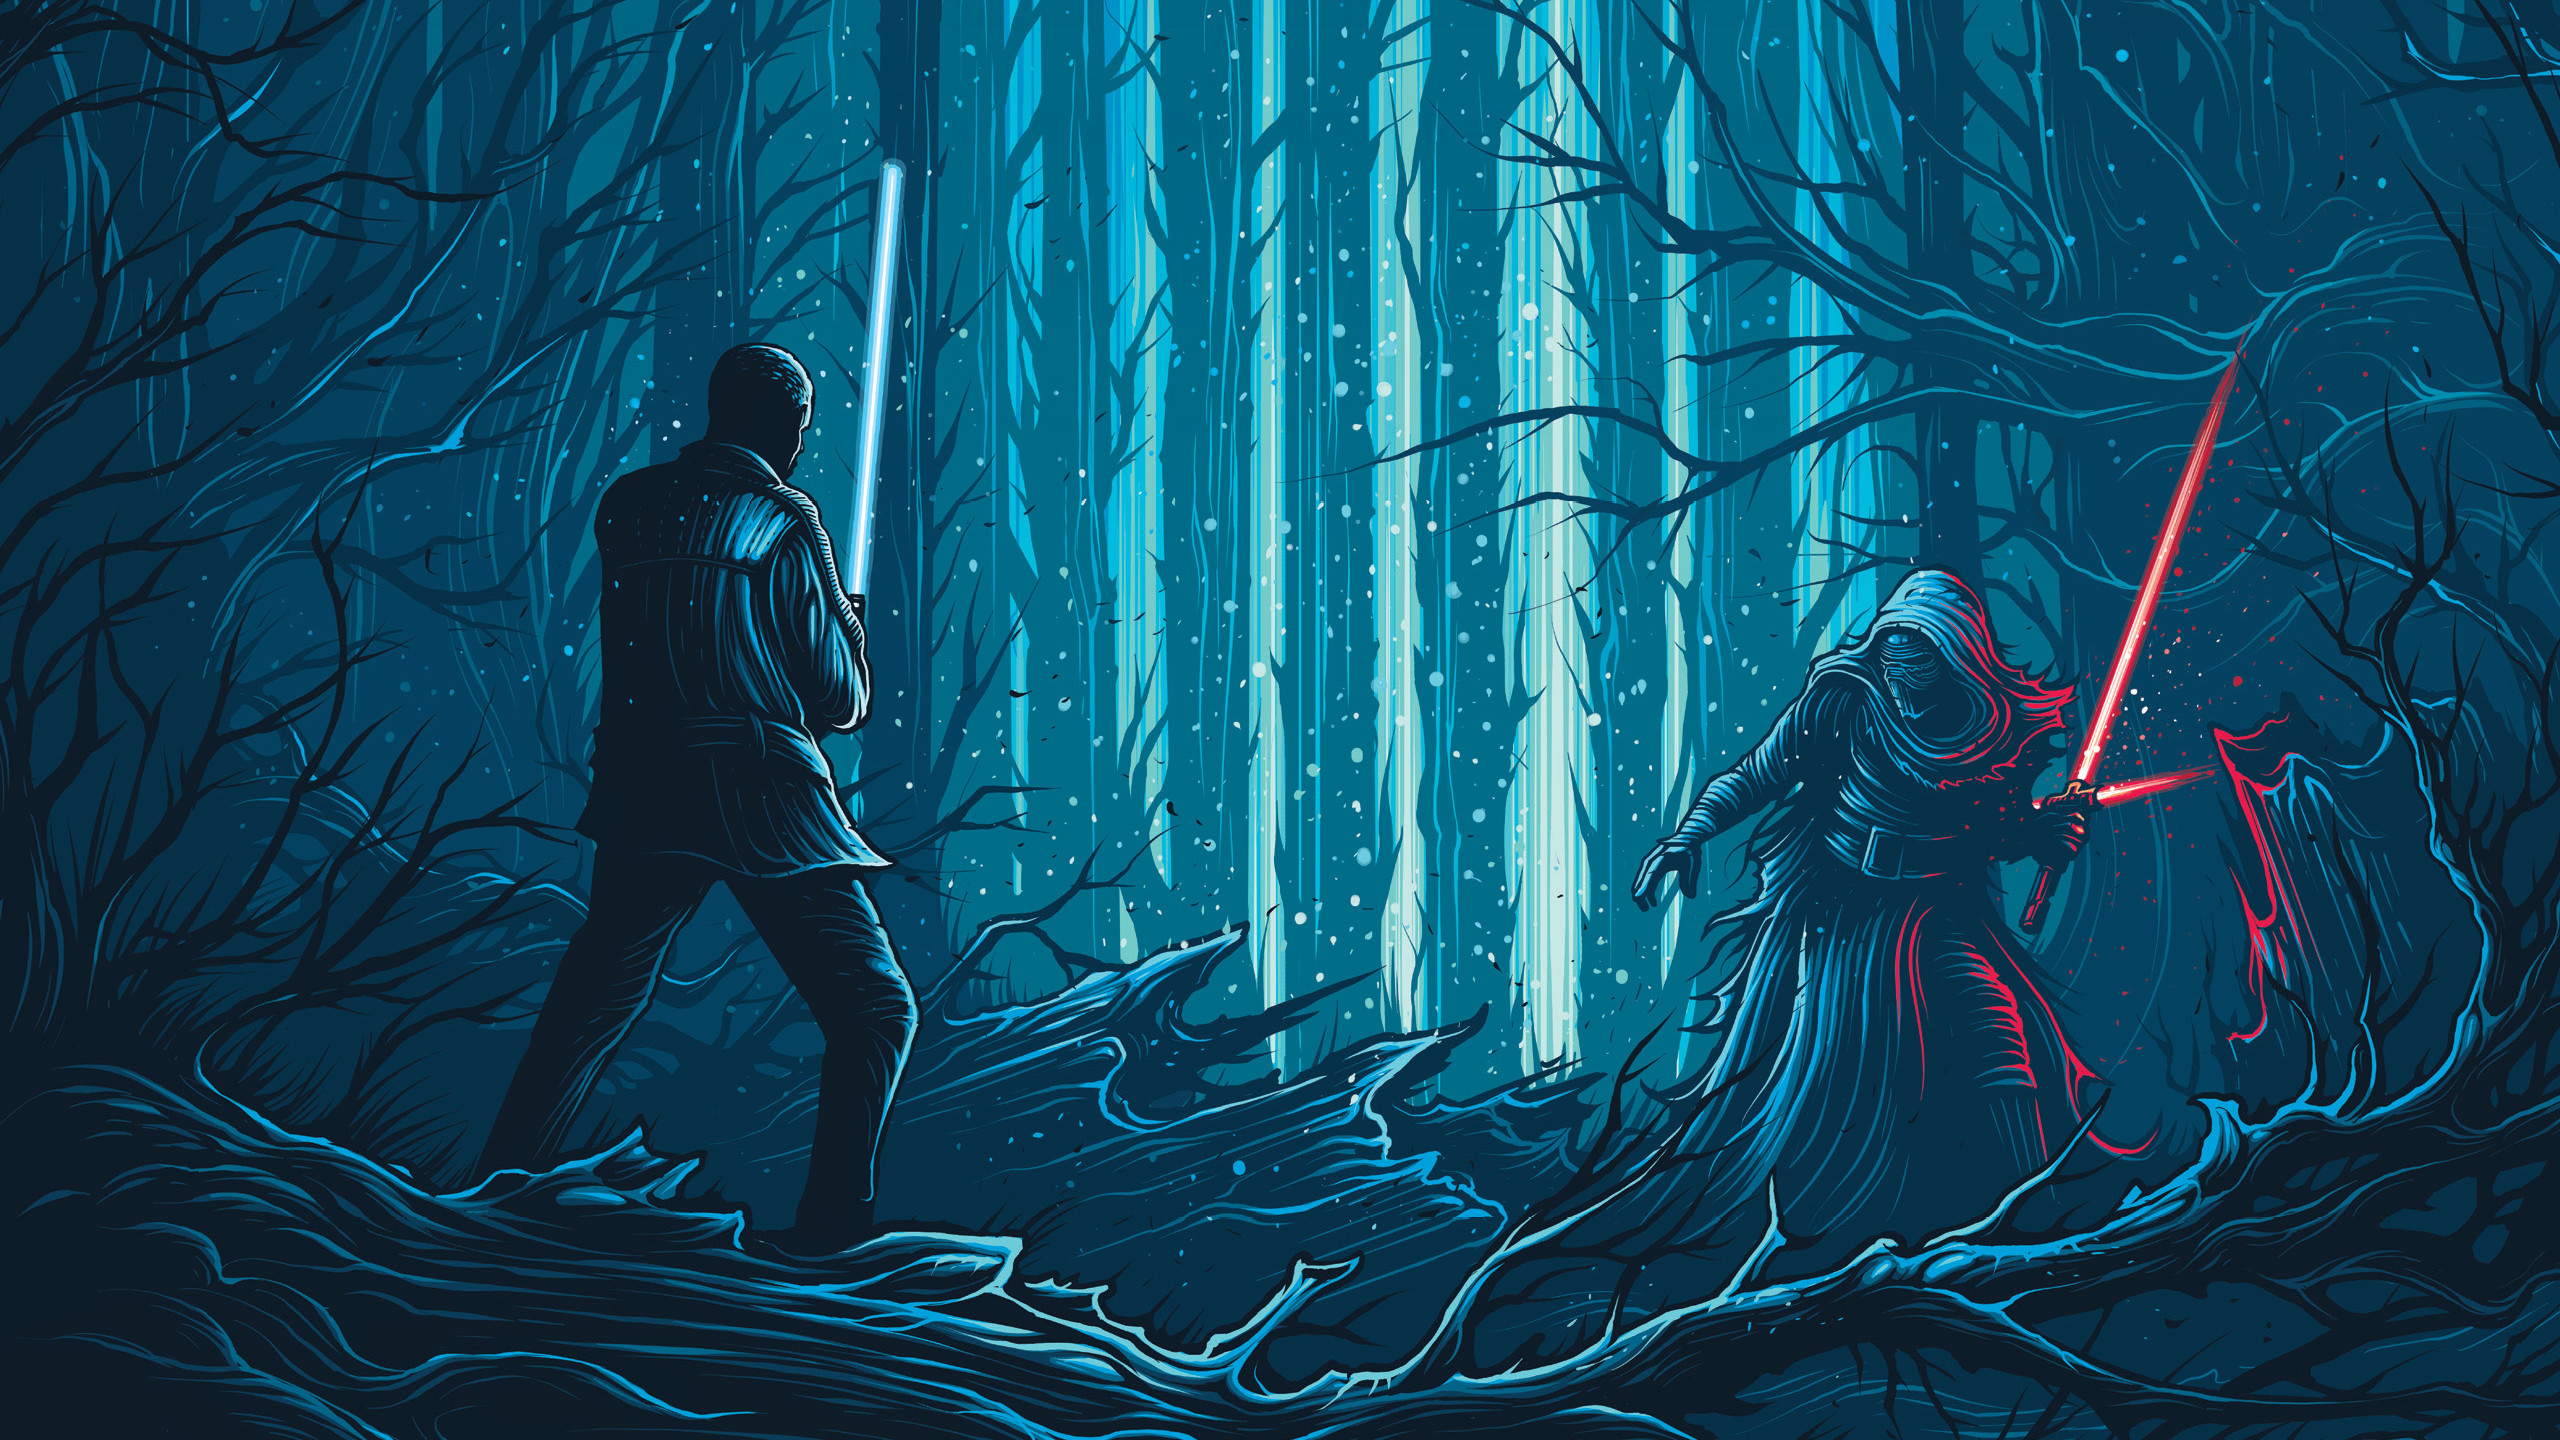 By Joleen Kimpel PC.914: Star Wars 1440p Wallpapers